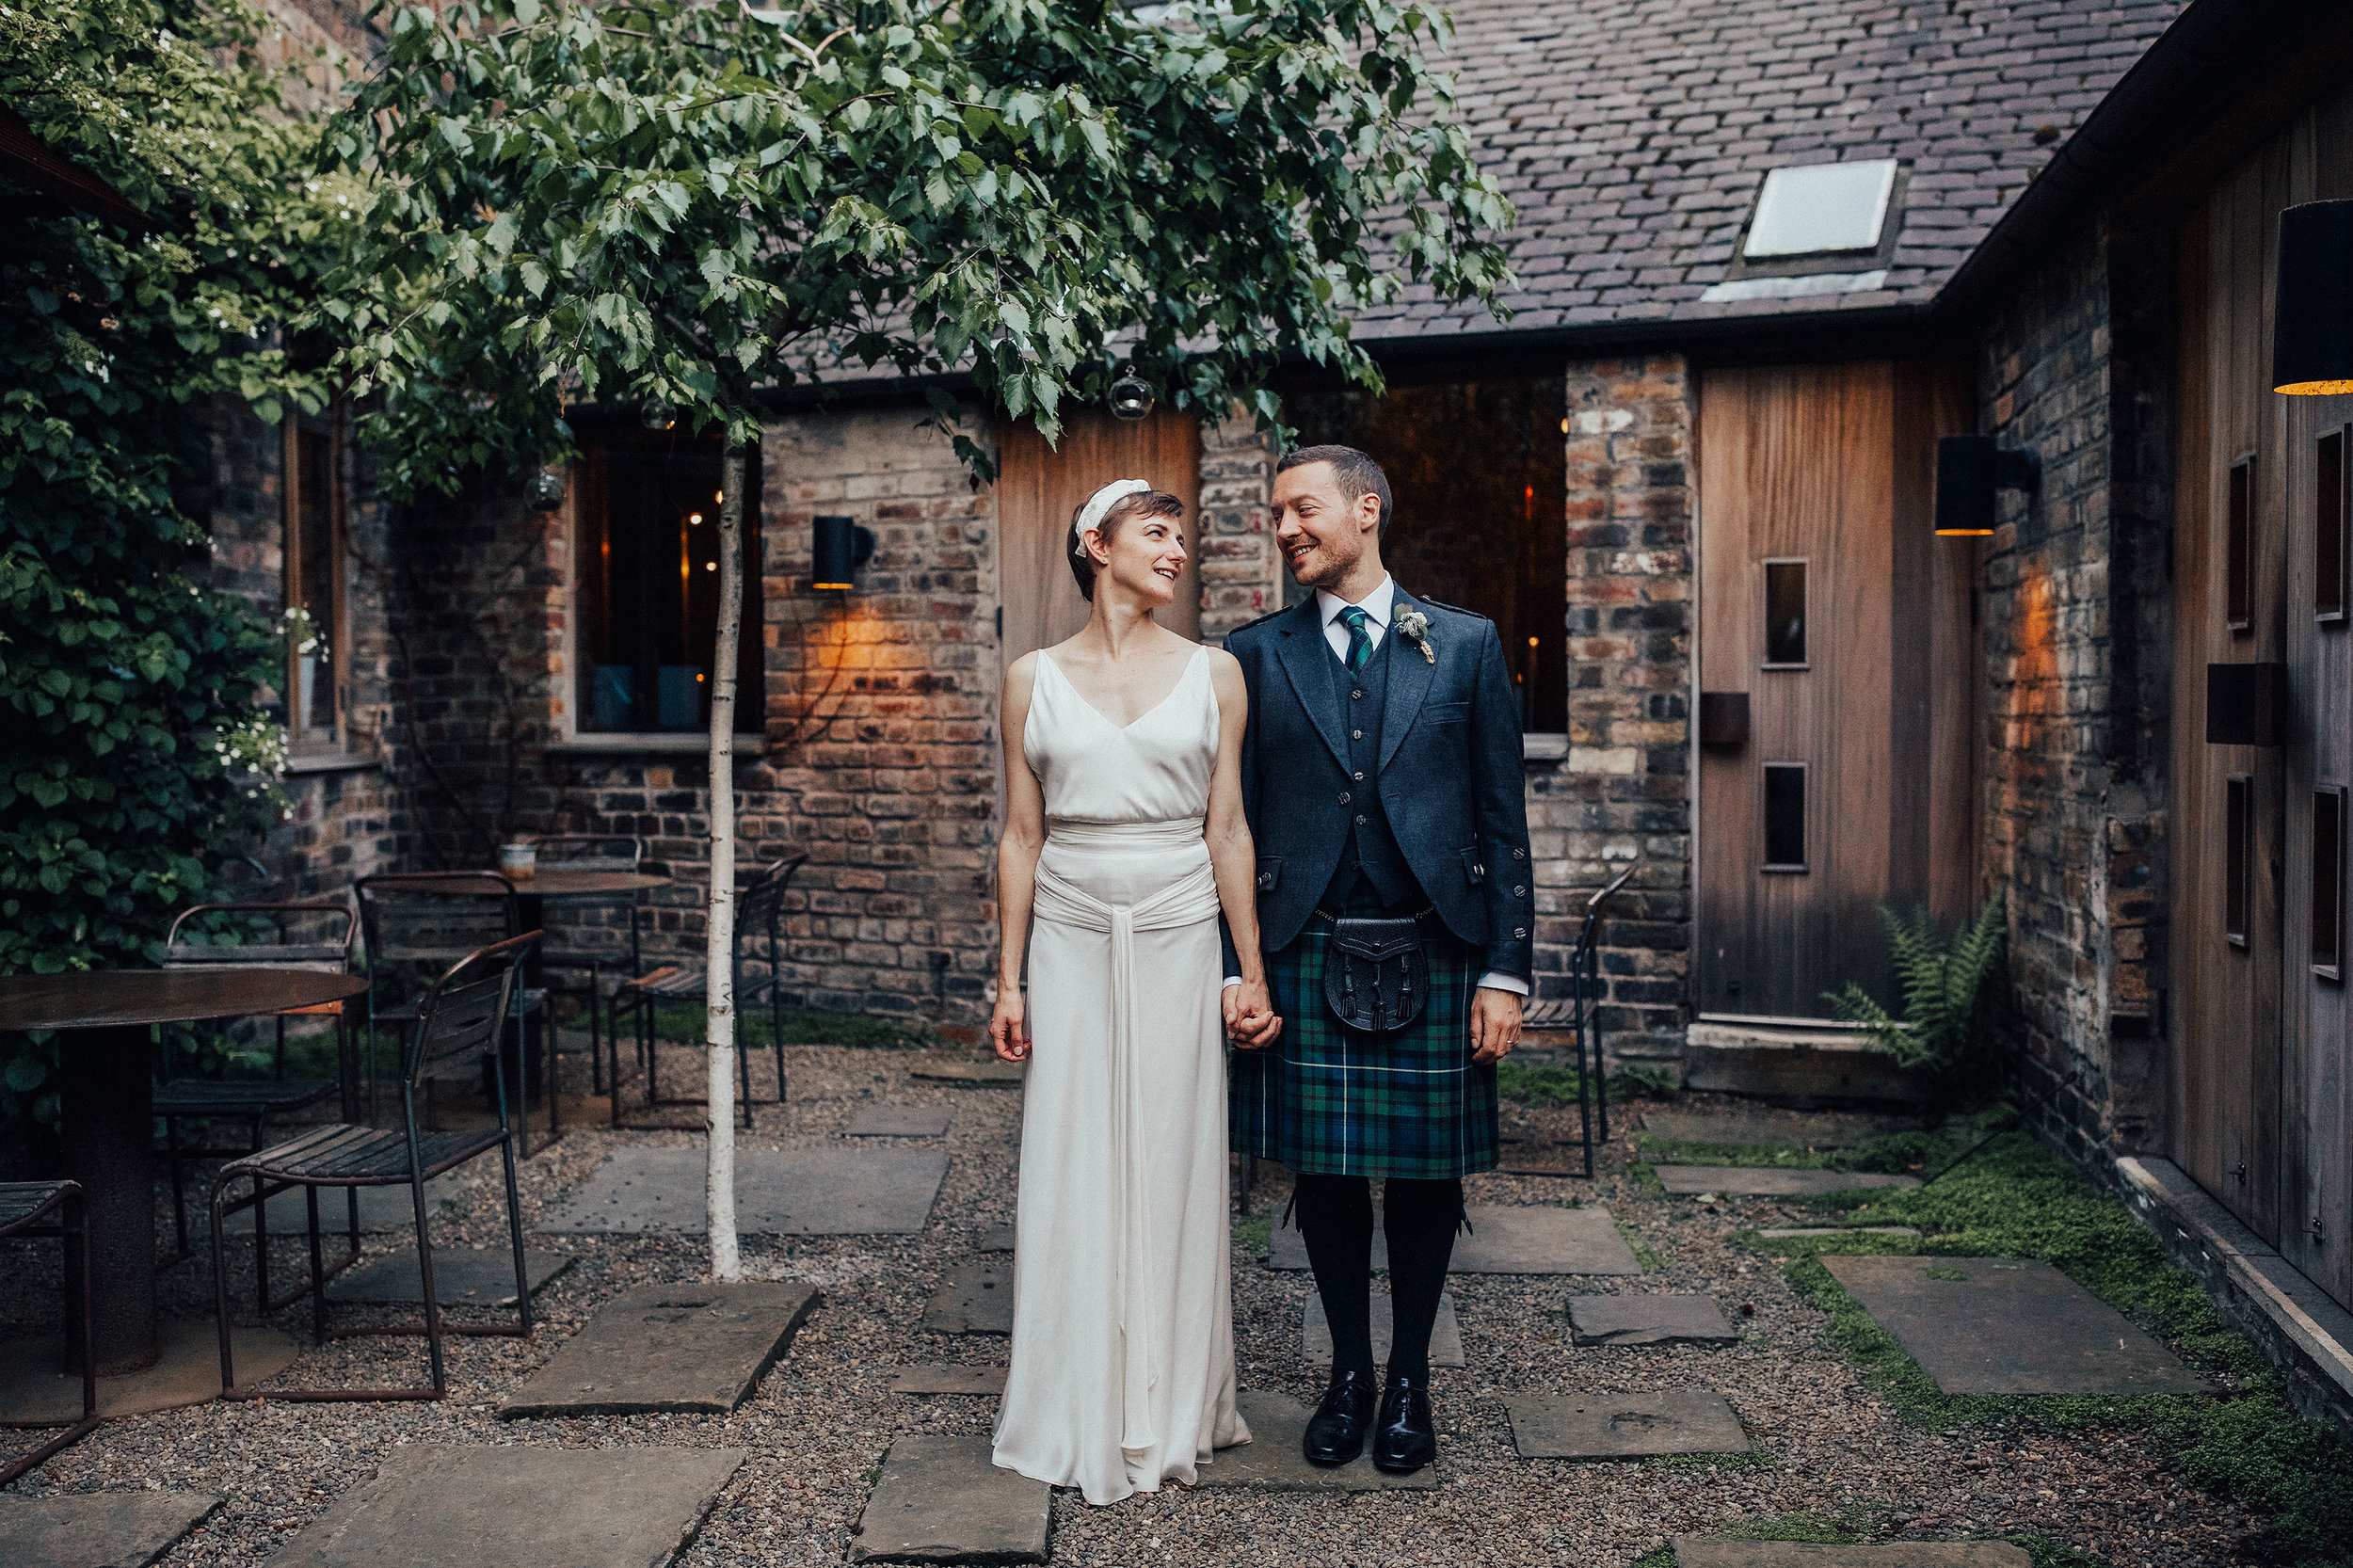 TIMBERYARD_EDINBURGH_WEDDING_PJ_PHILLIPS_PHOTOGRAPHY_205.jpg